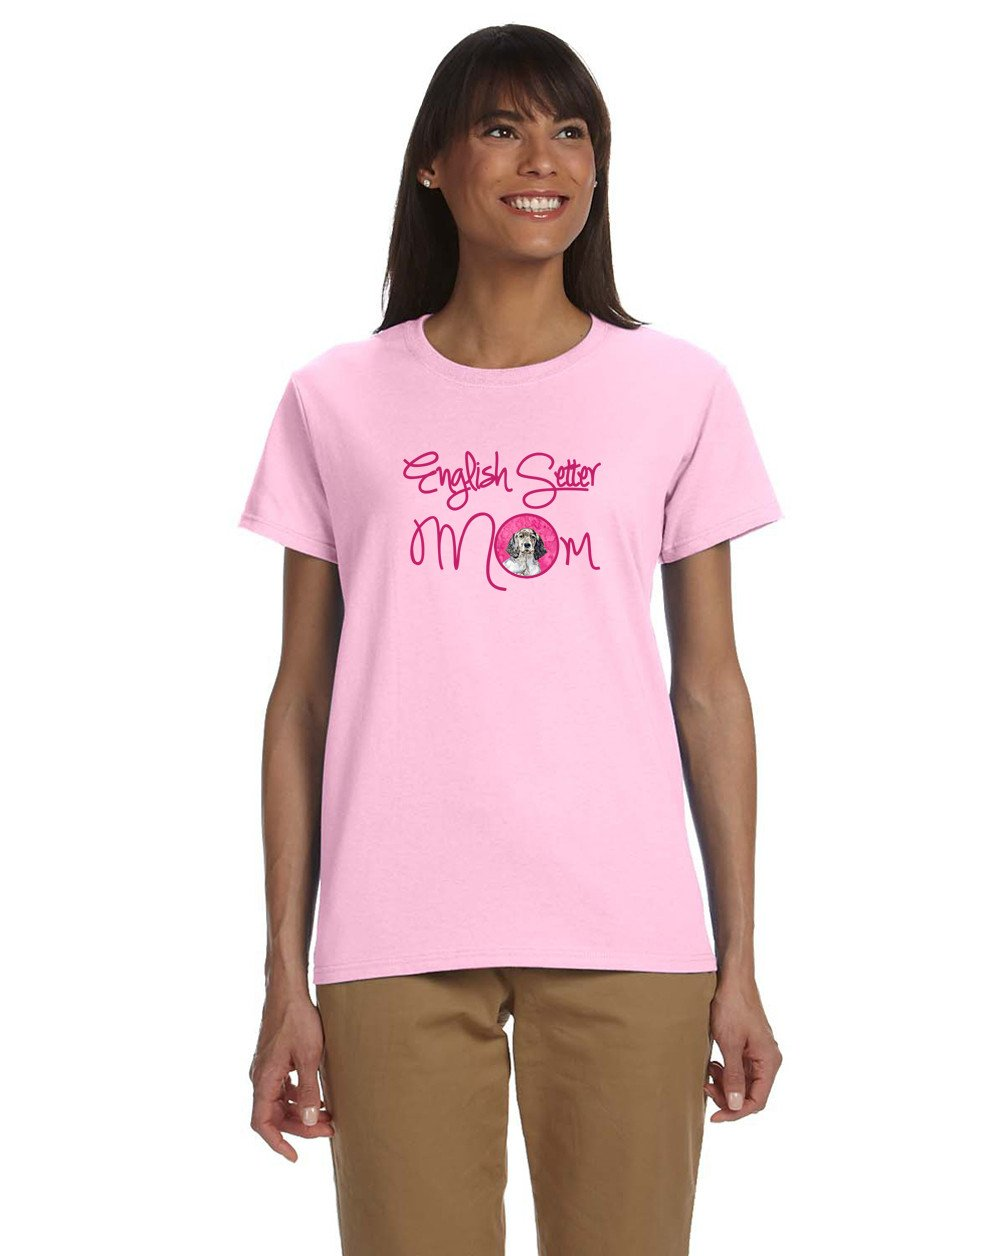 Buy this Pink English Setter Mom T-shirt Ladies Cut Short Sleeve Small LH9367PK-978-S